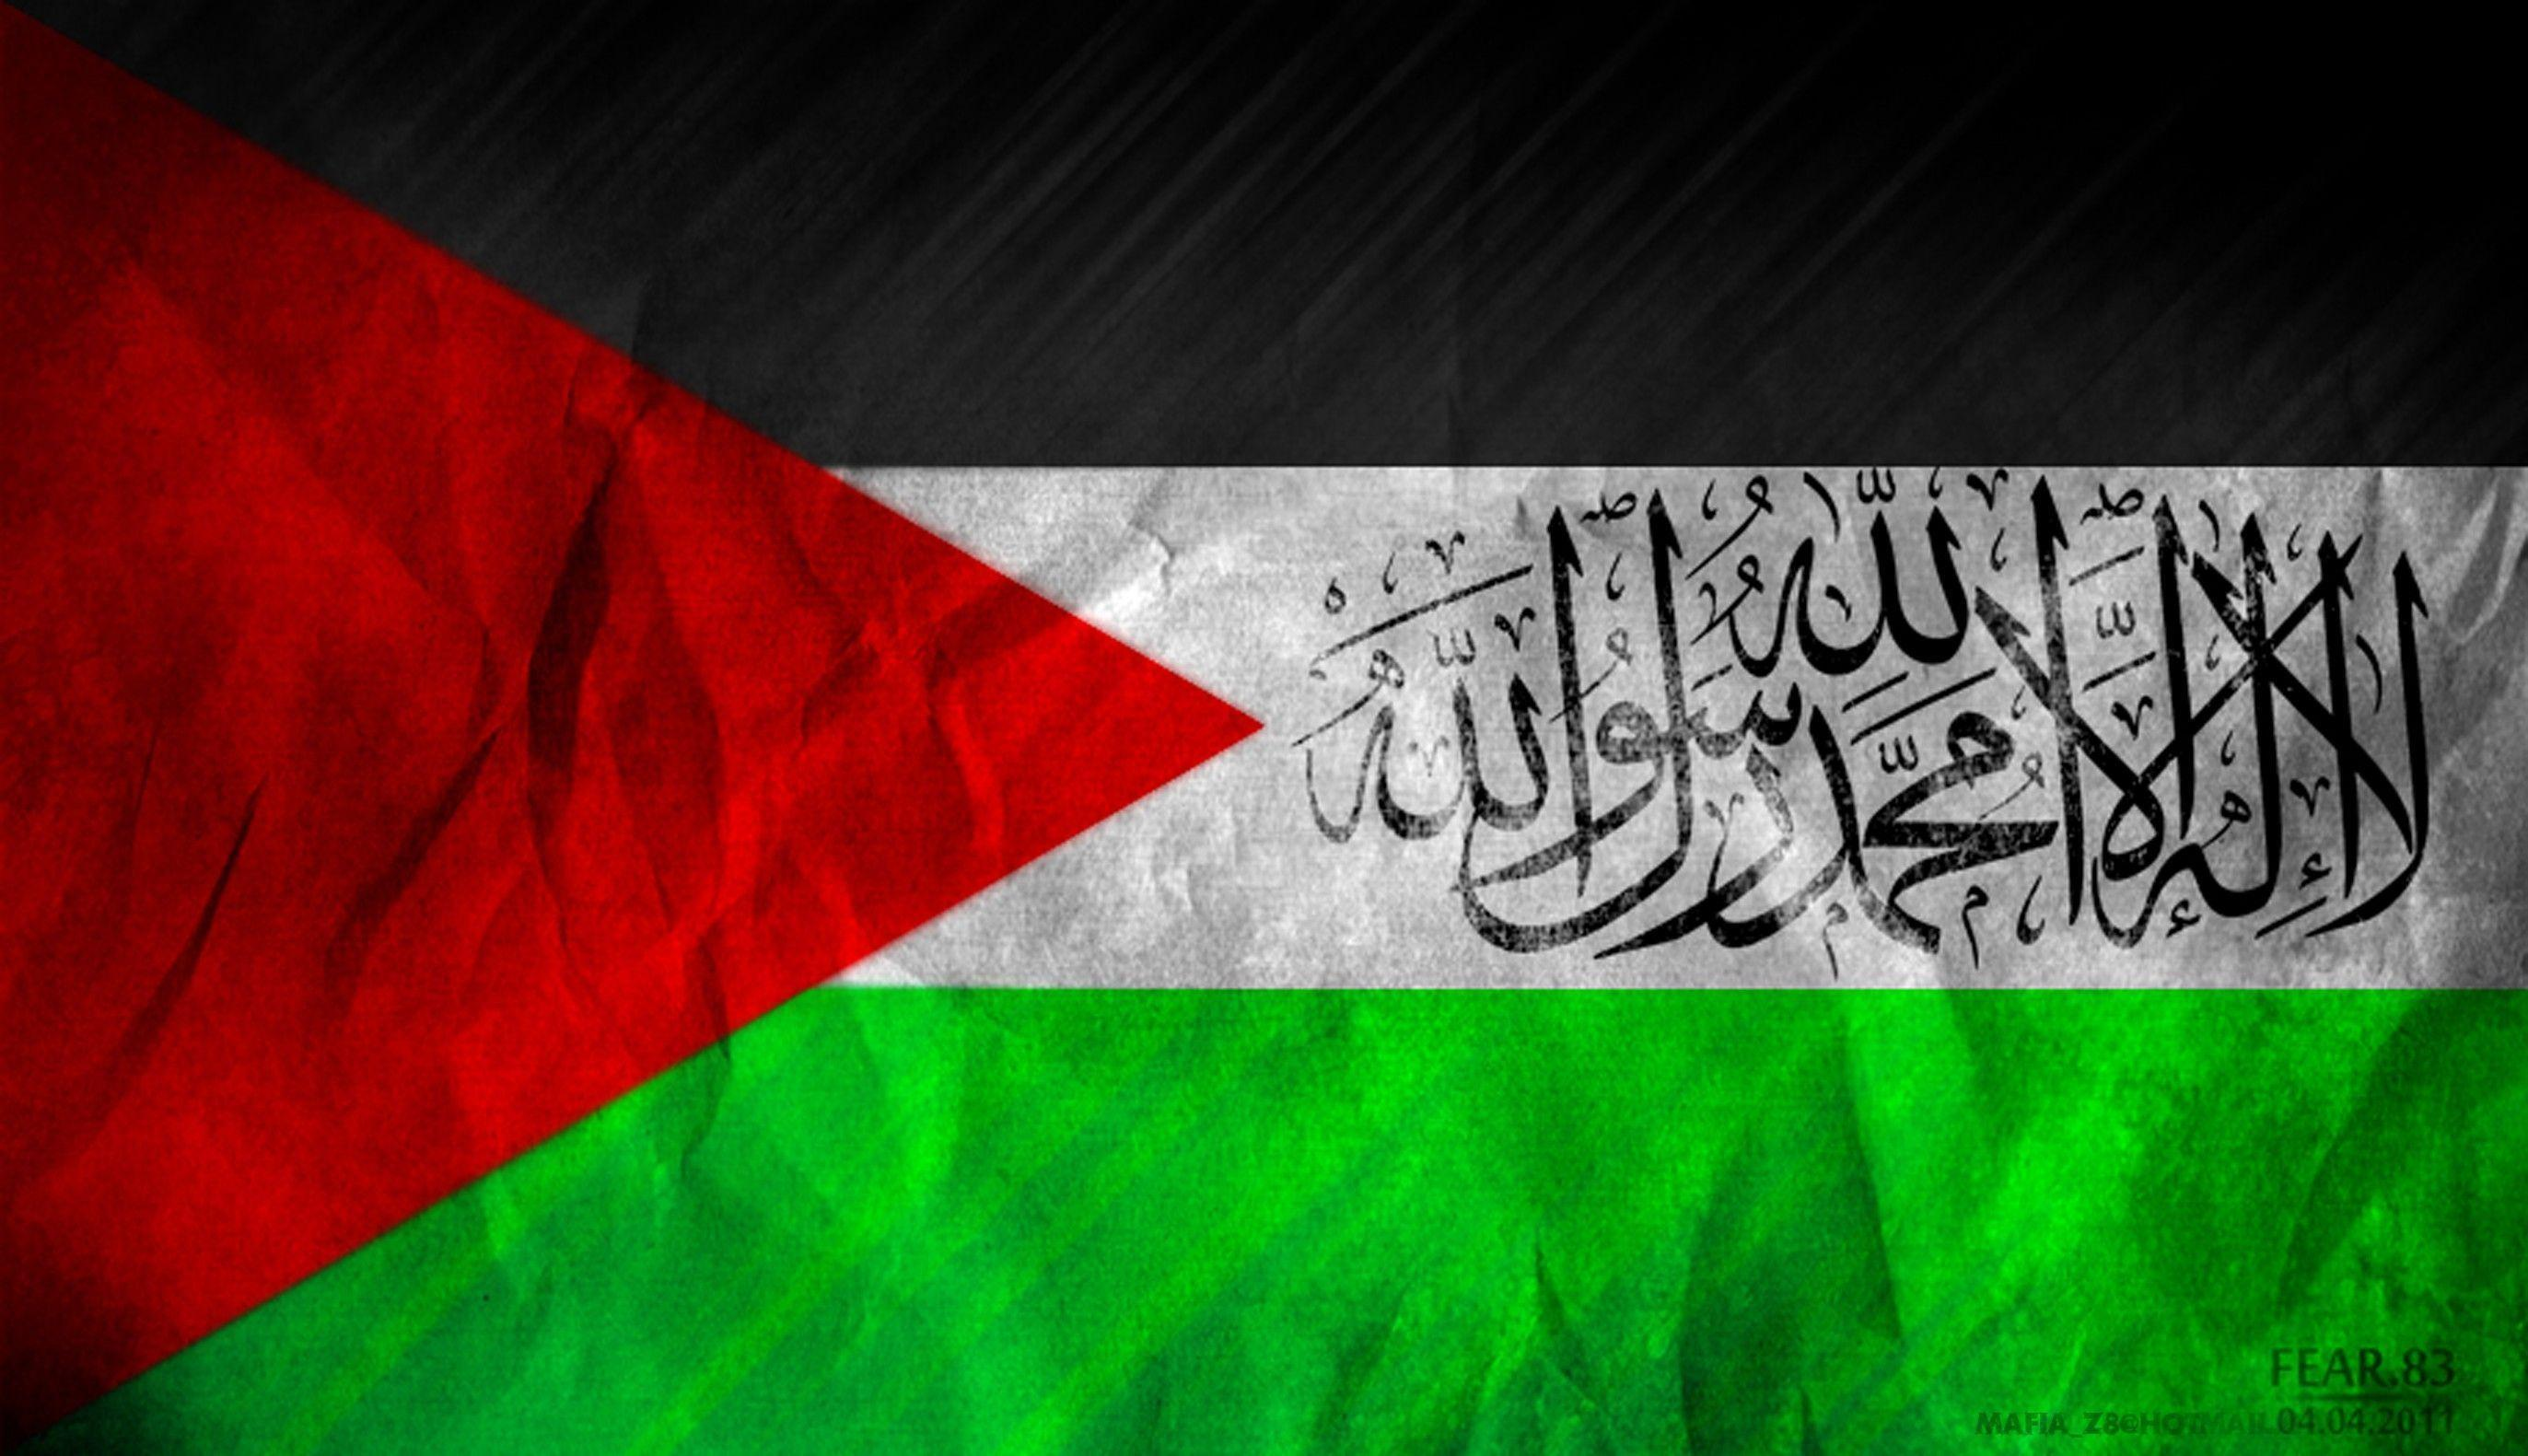 Palestine wallpapers wallpaper cave - Palestine flag wallpaper hd ...